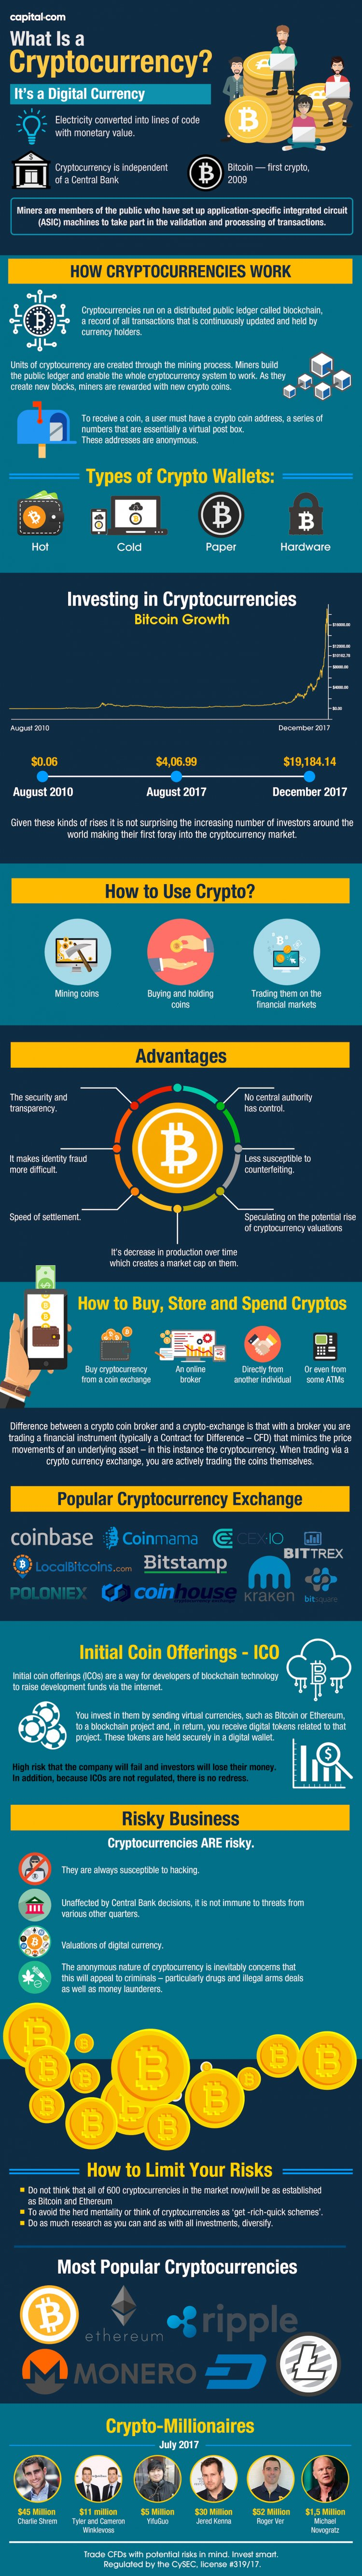 What is a Cryptocurrency infographic